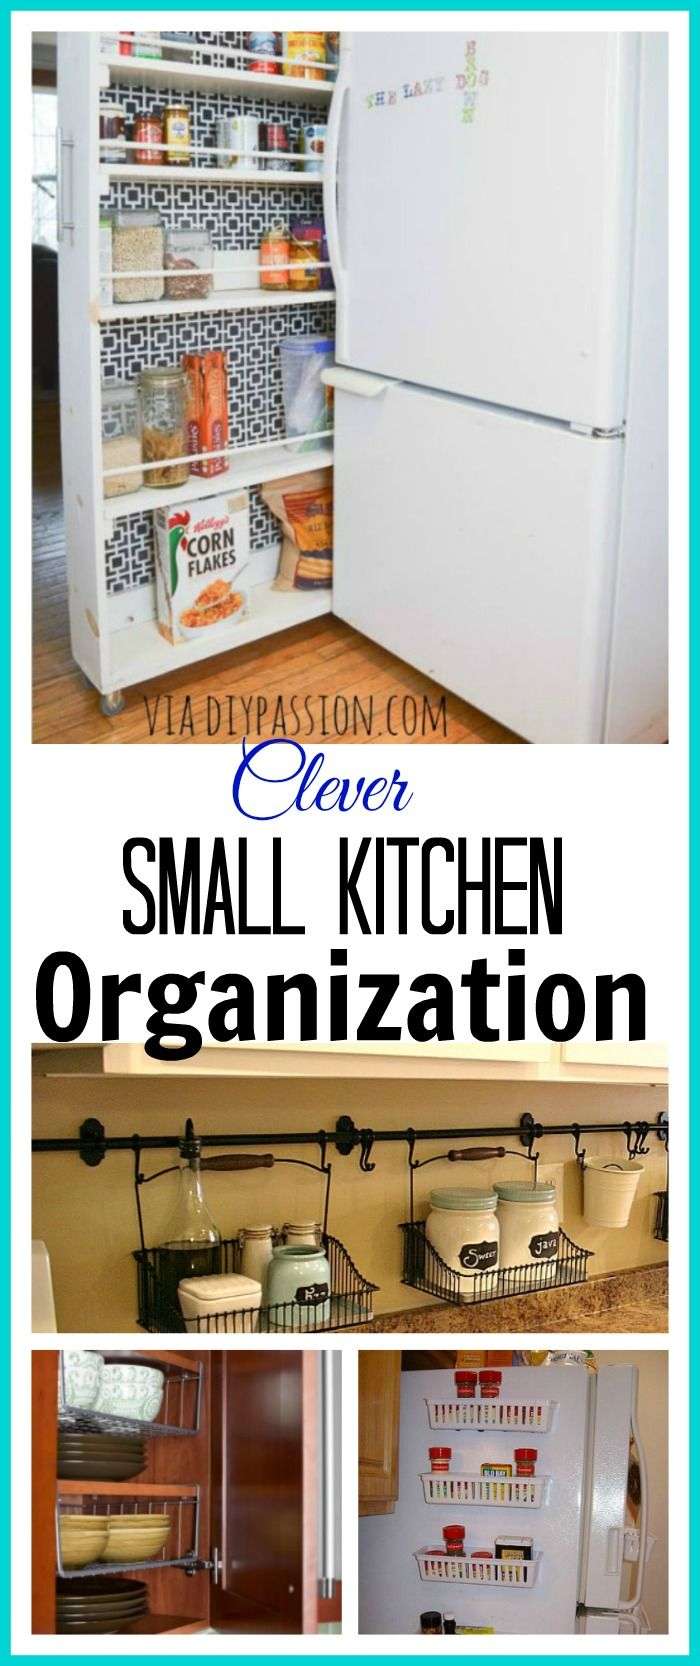 Ideas For Organizing A Small Kitchen  Organizing Spaces And Kitchens Awesome Kitchen Organization Ideas Design Decoration